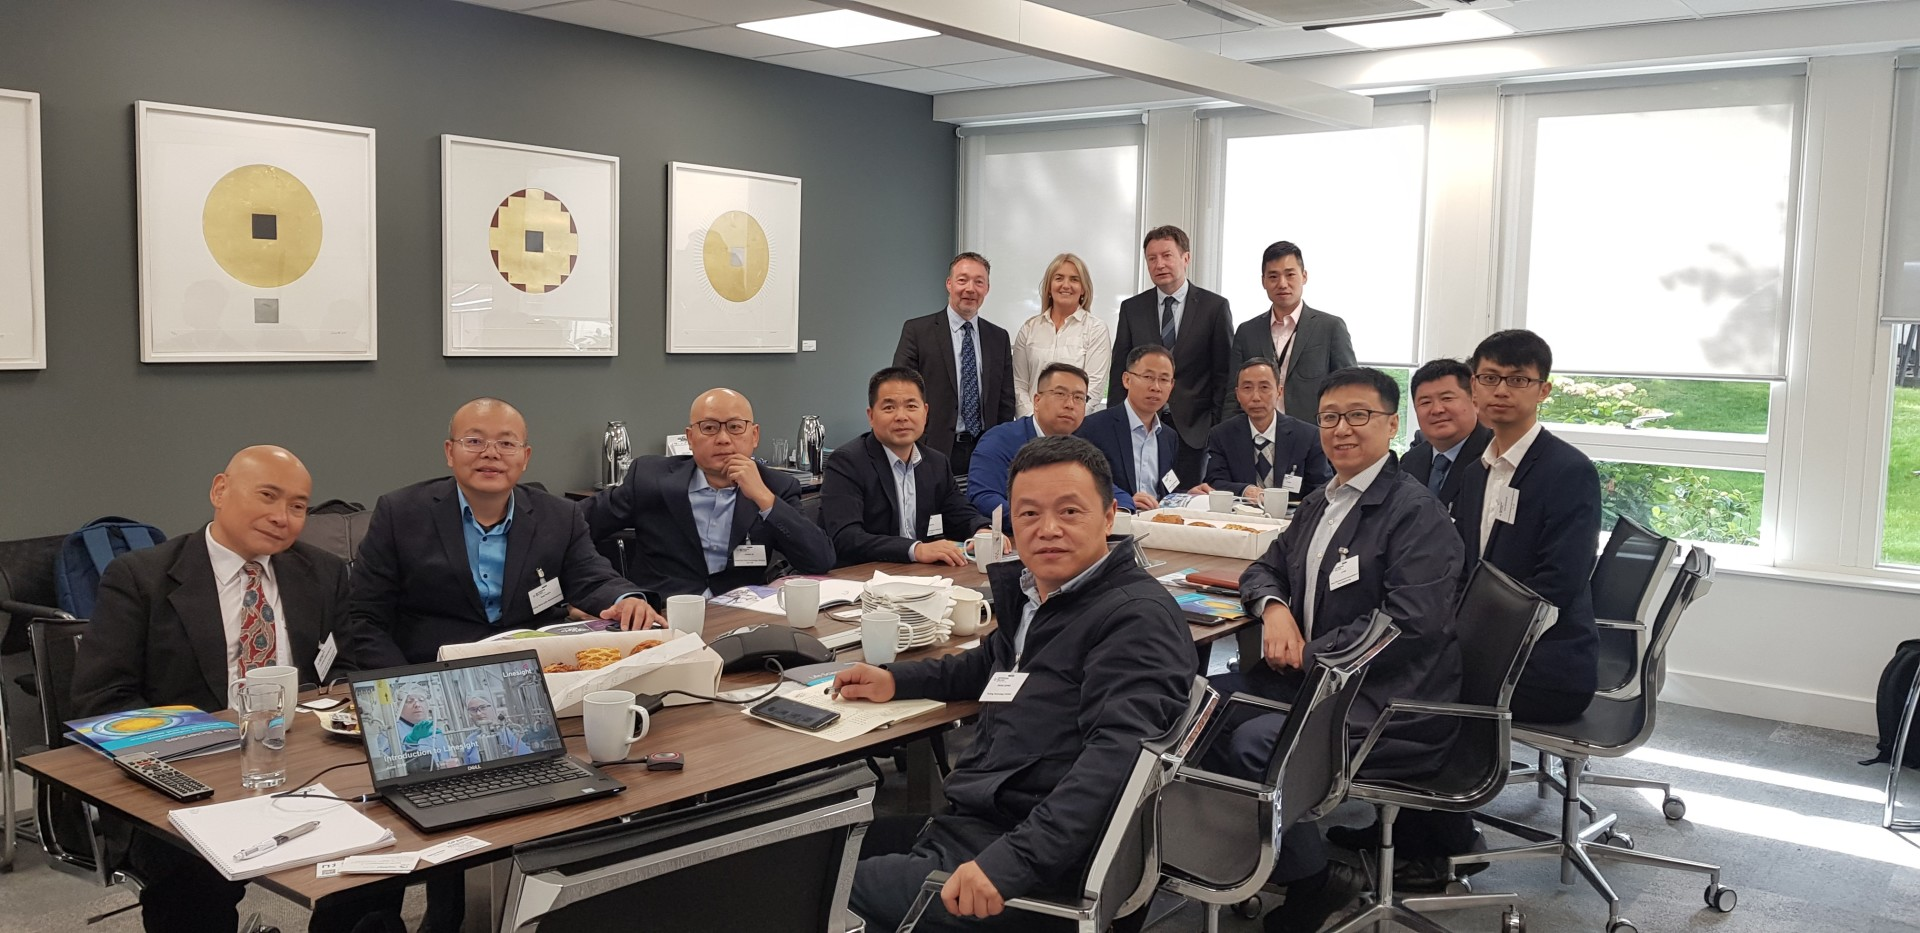 Enterprise Ireland - China delegation